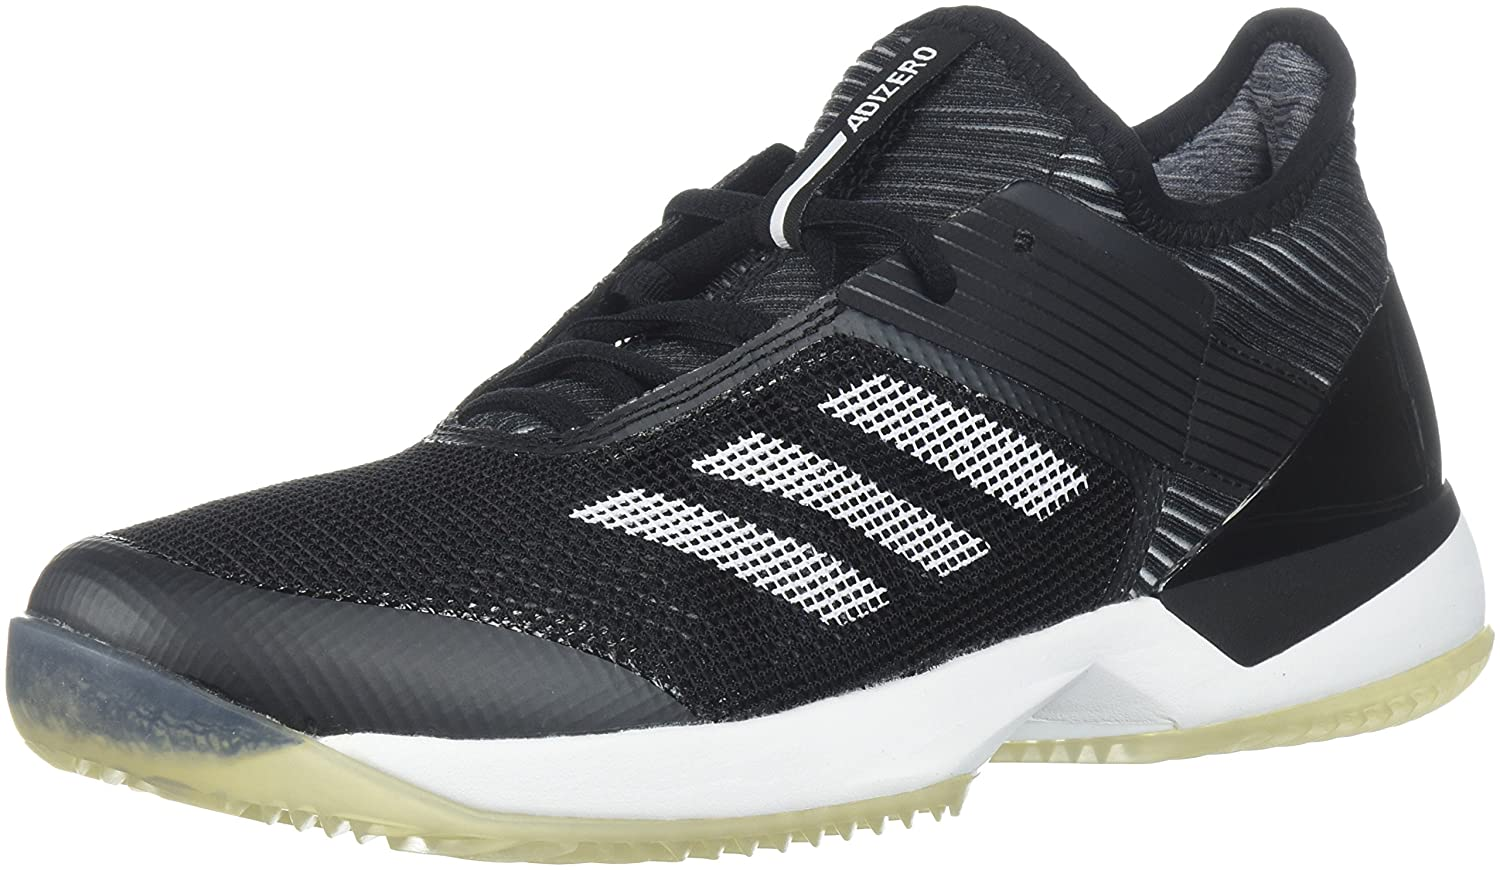 adidas Women's Adizero Ubersonic 3 w Clay Tennis Shoe B071S7M3R7 7 B(M) US|Core Black/White/Core Black